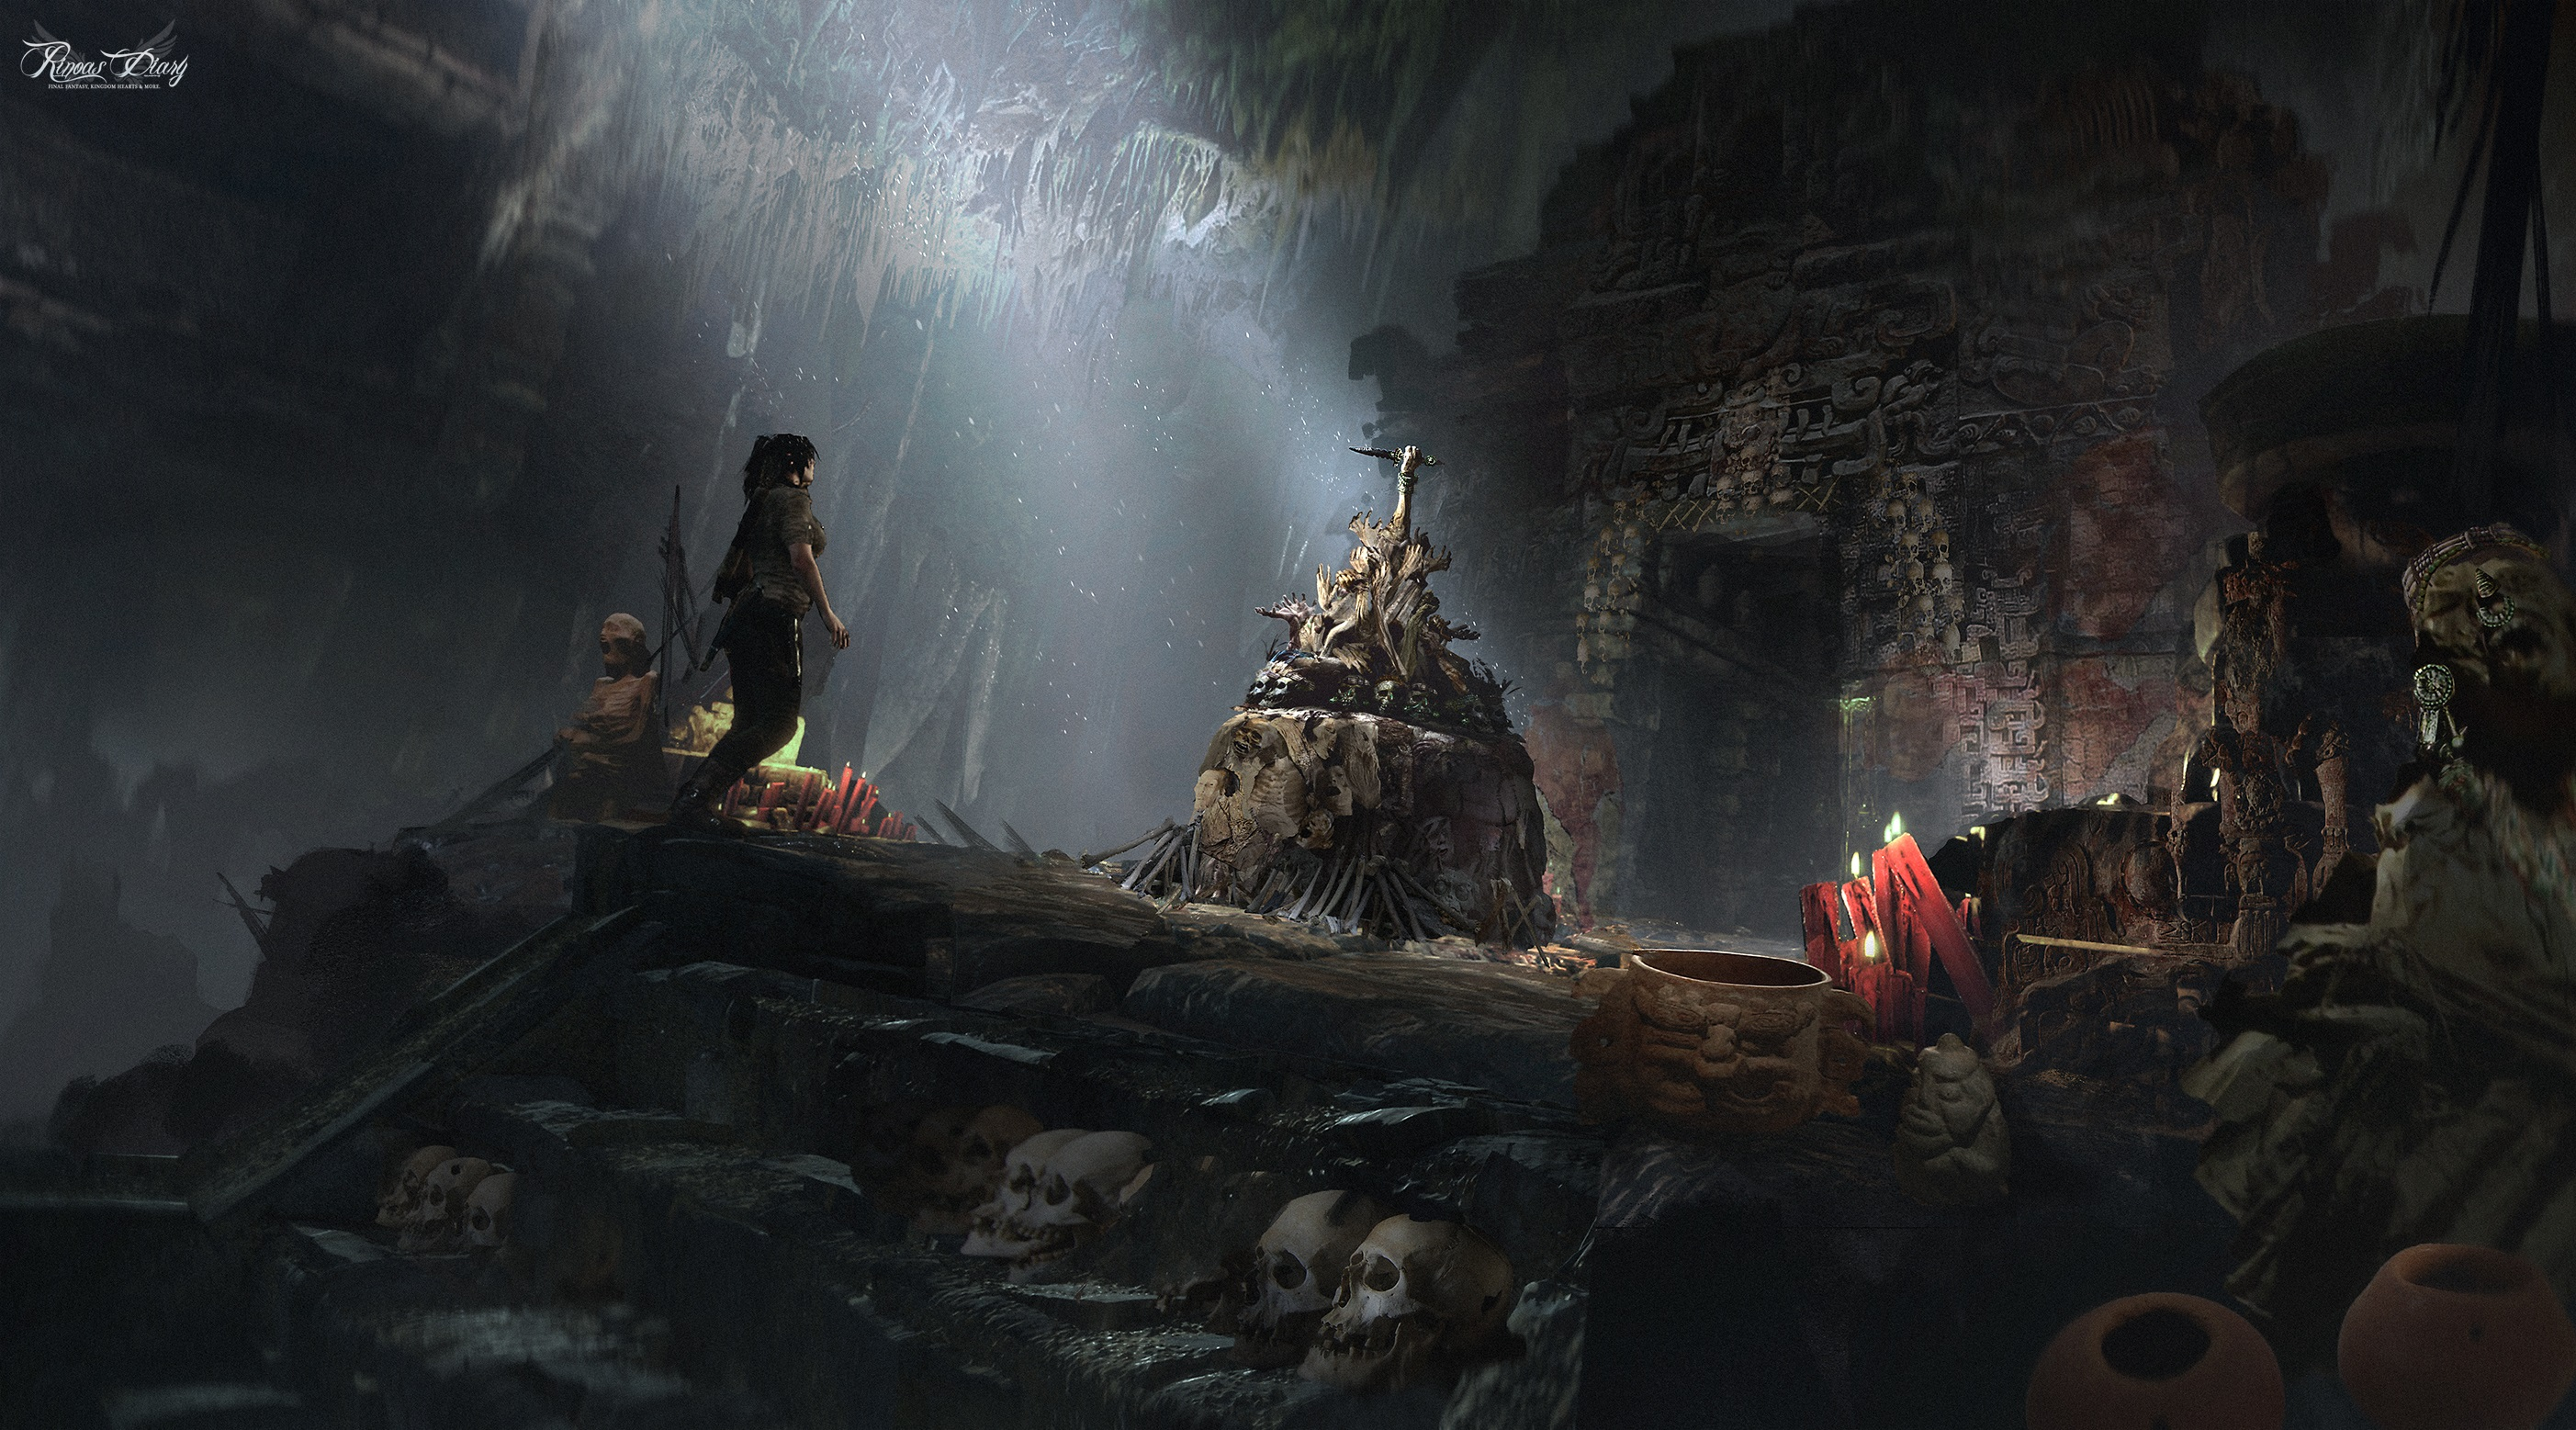 Esplorazione subacquea e livelli di difficoltà per Shadow of the Tomb Raider!